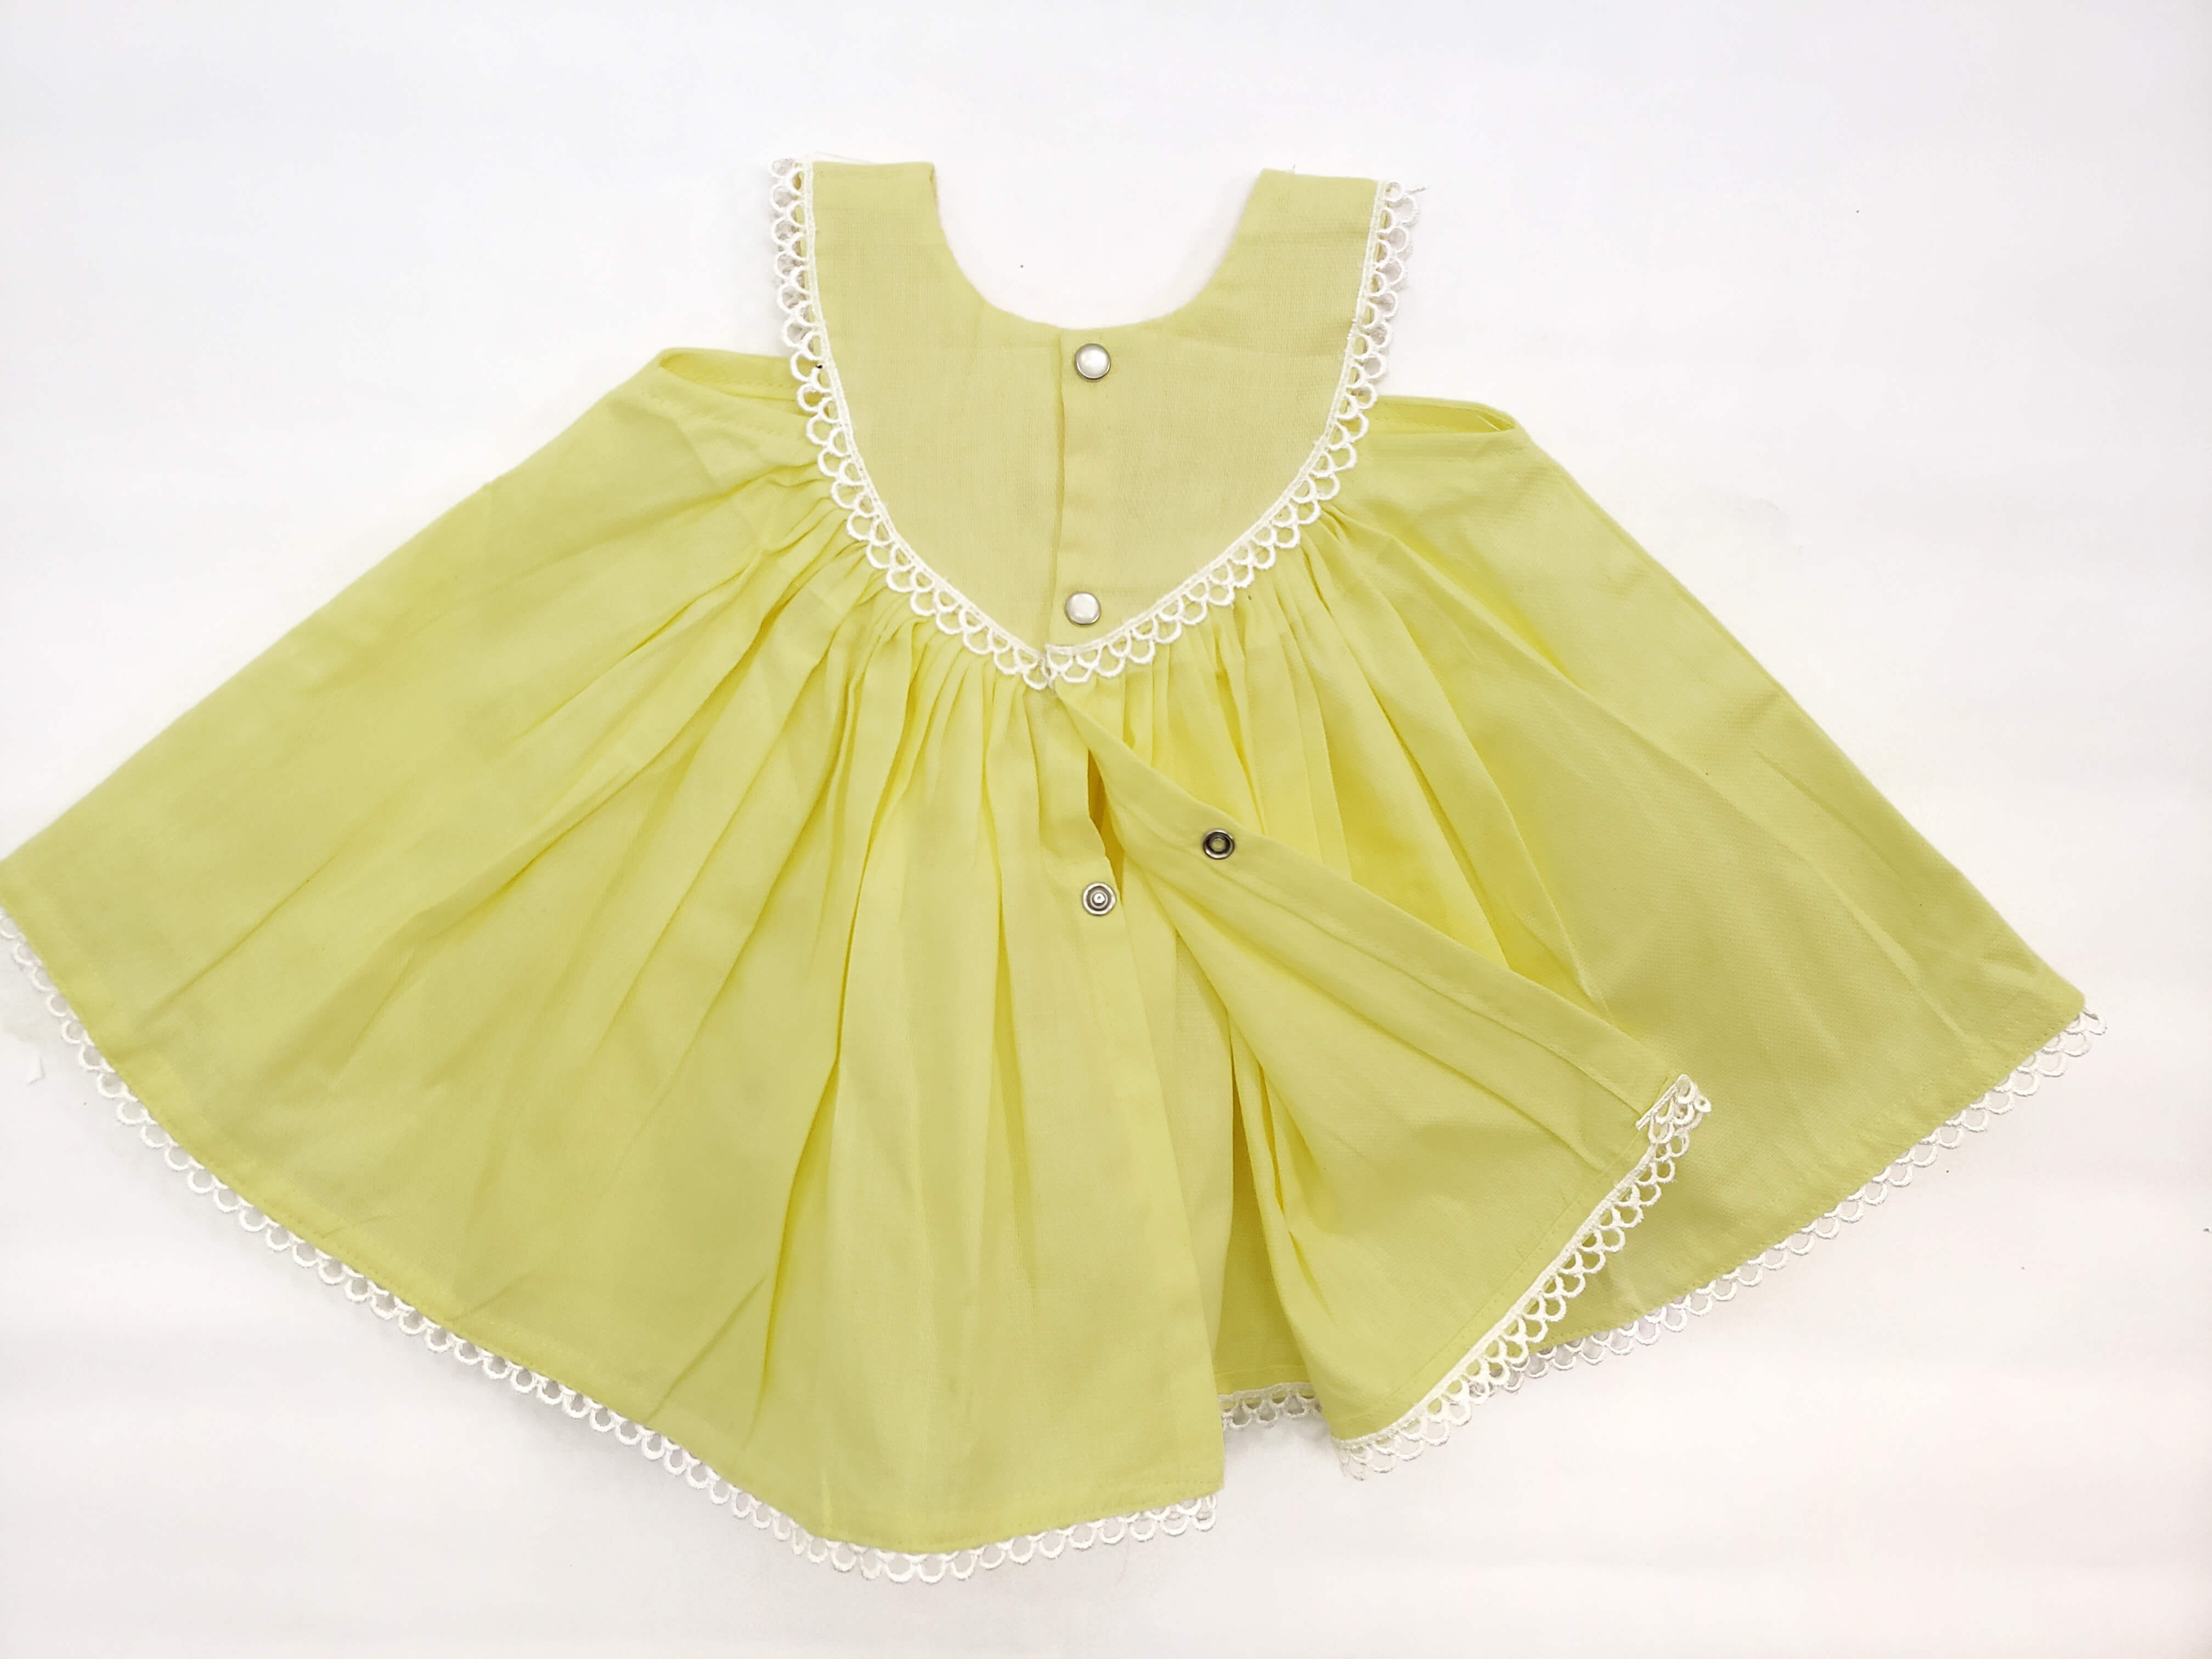 Baby Dress Yellow - 100% Cotton